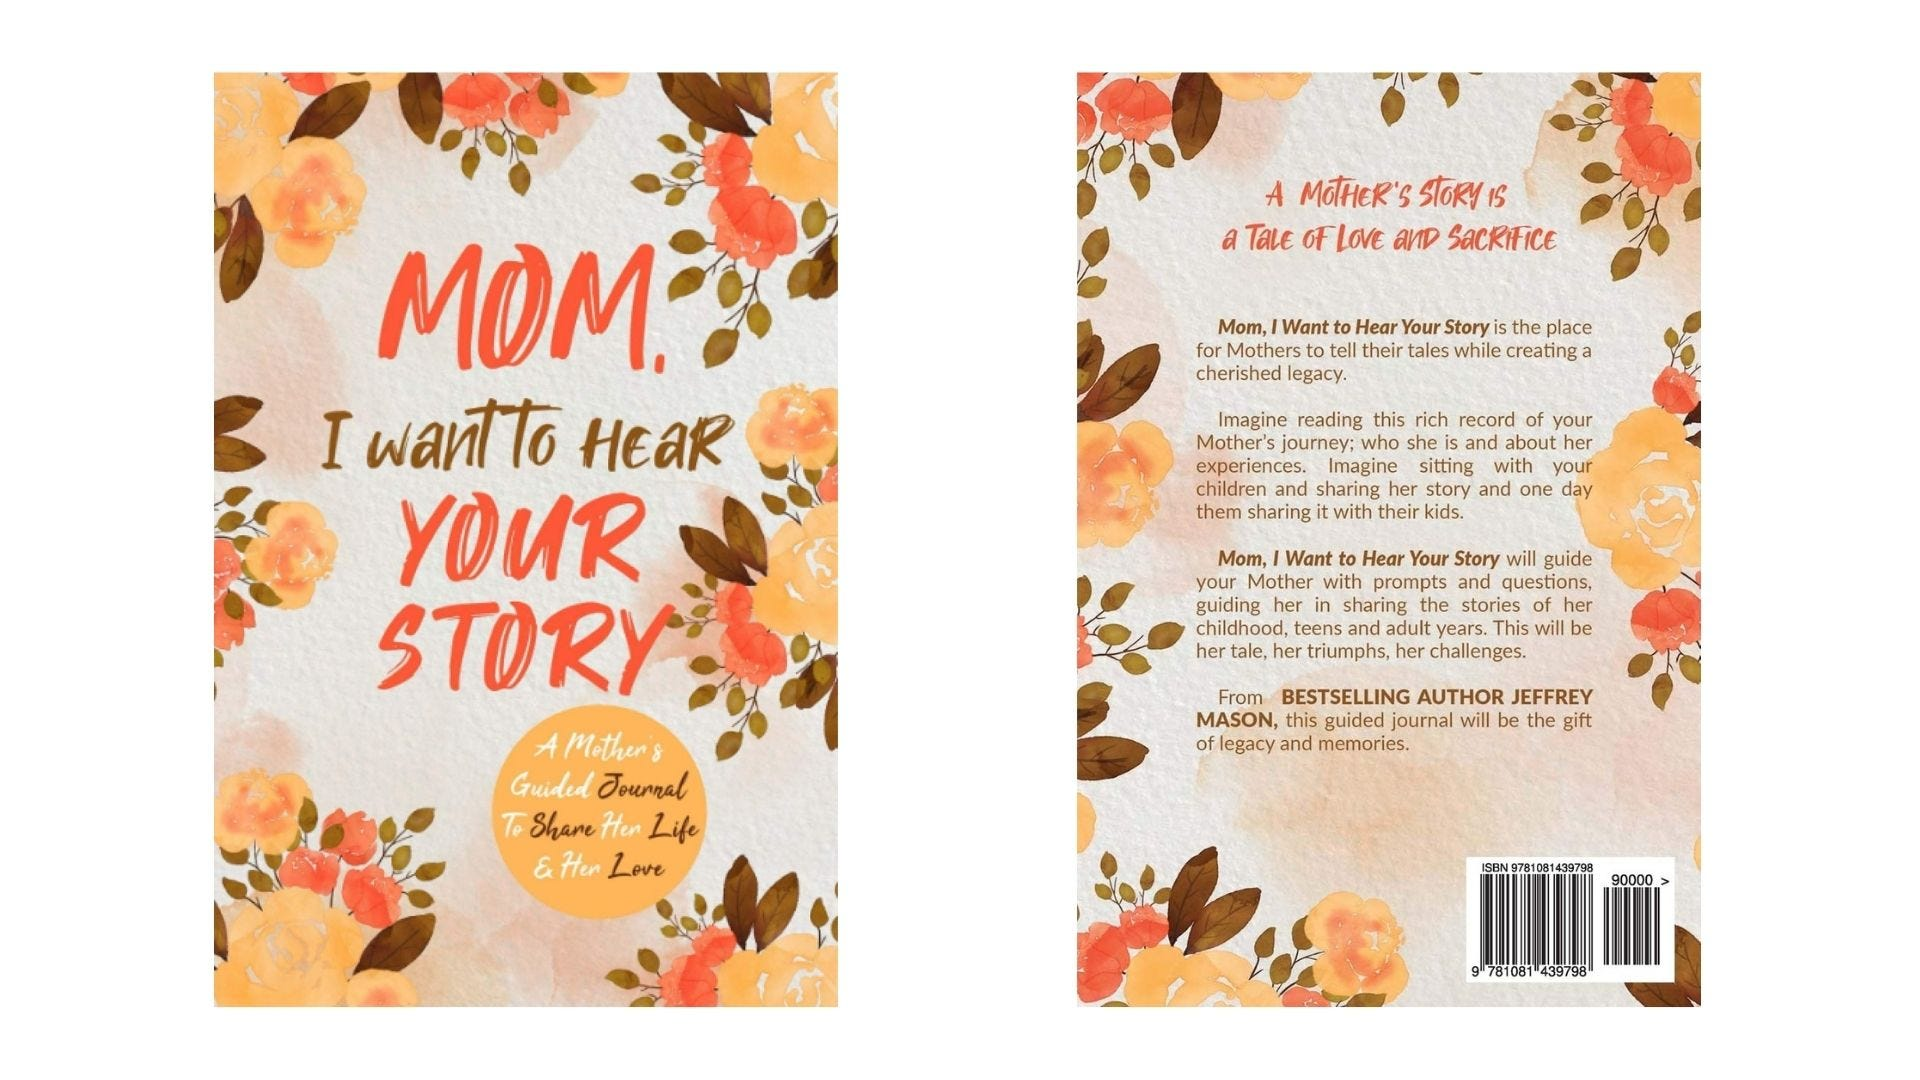 The front and back cover of a book called Mom, I Want to Hear Your Story.